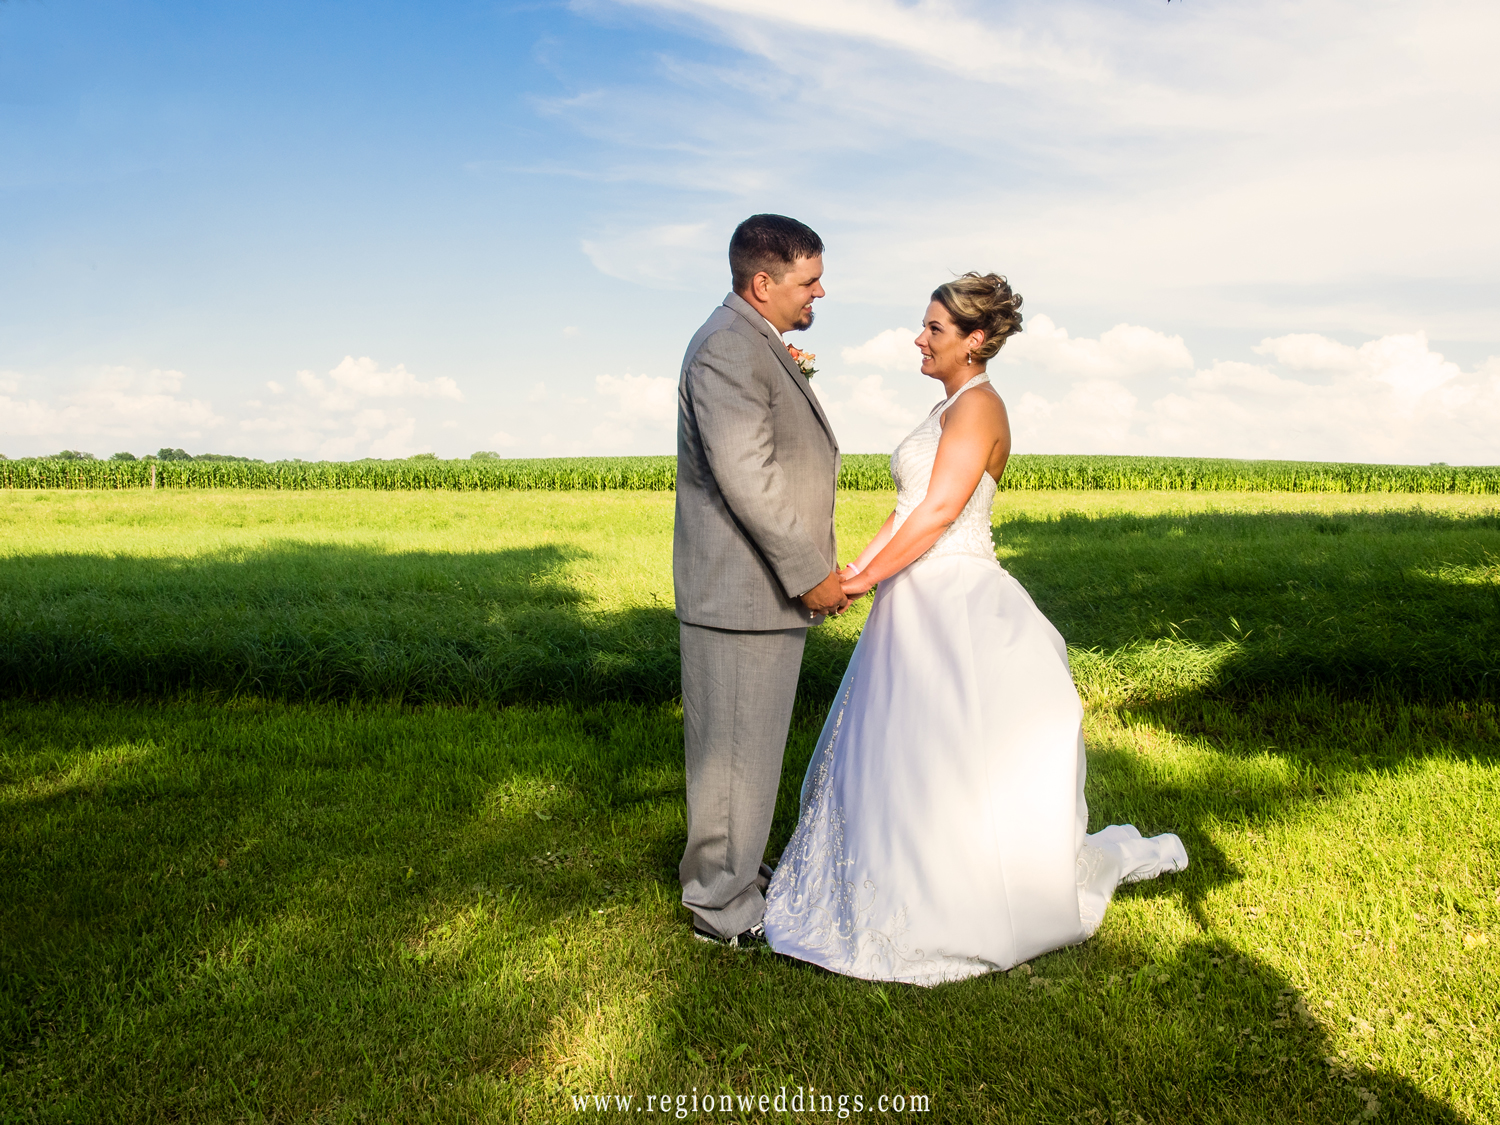 The newly married couple gaze at each other with Indiana farmland as a backdrop.